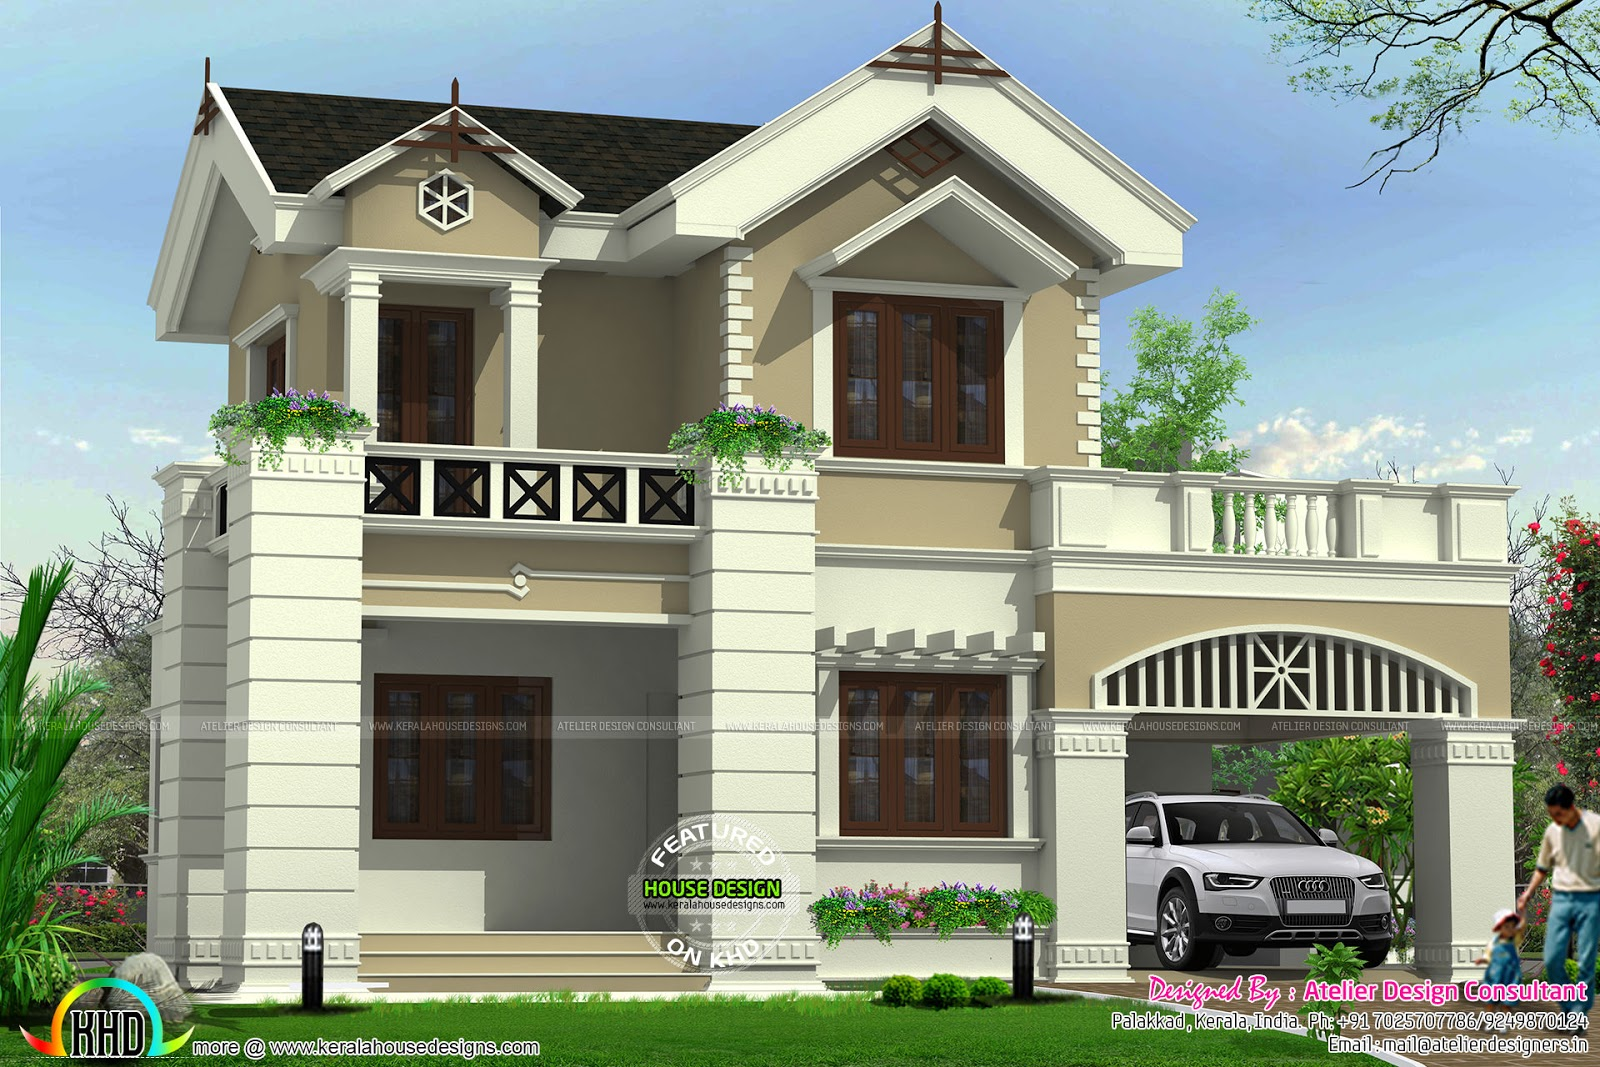 Cute victorian model home kerala home design and floor plans for The model house